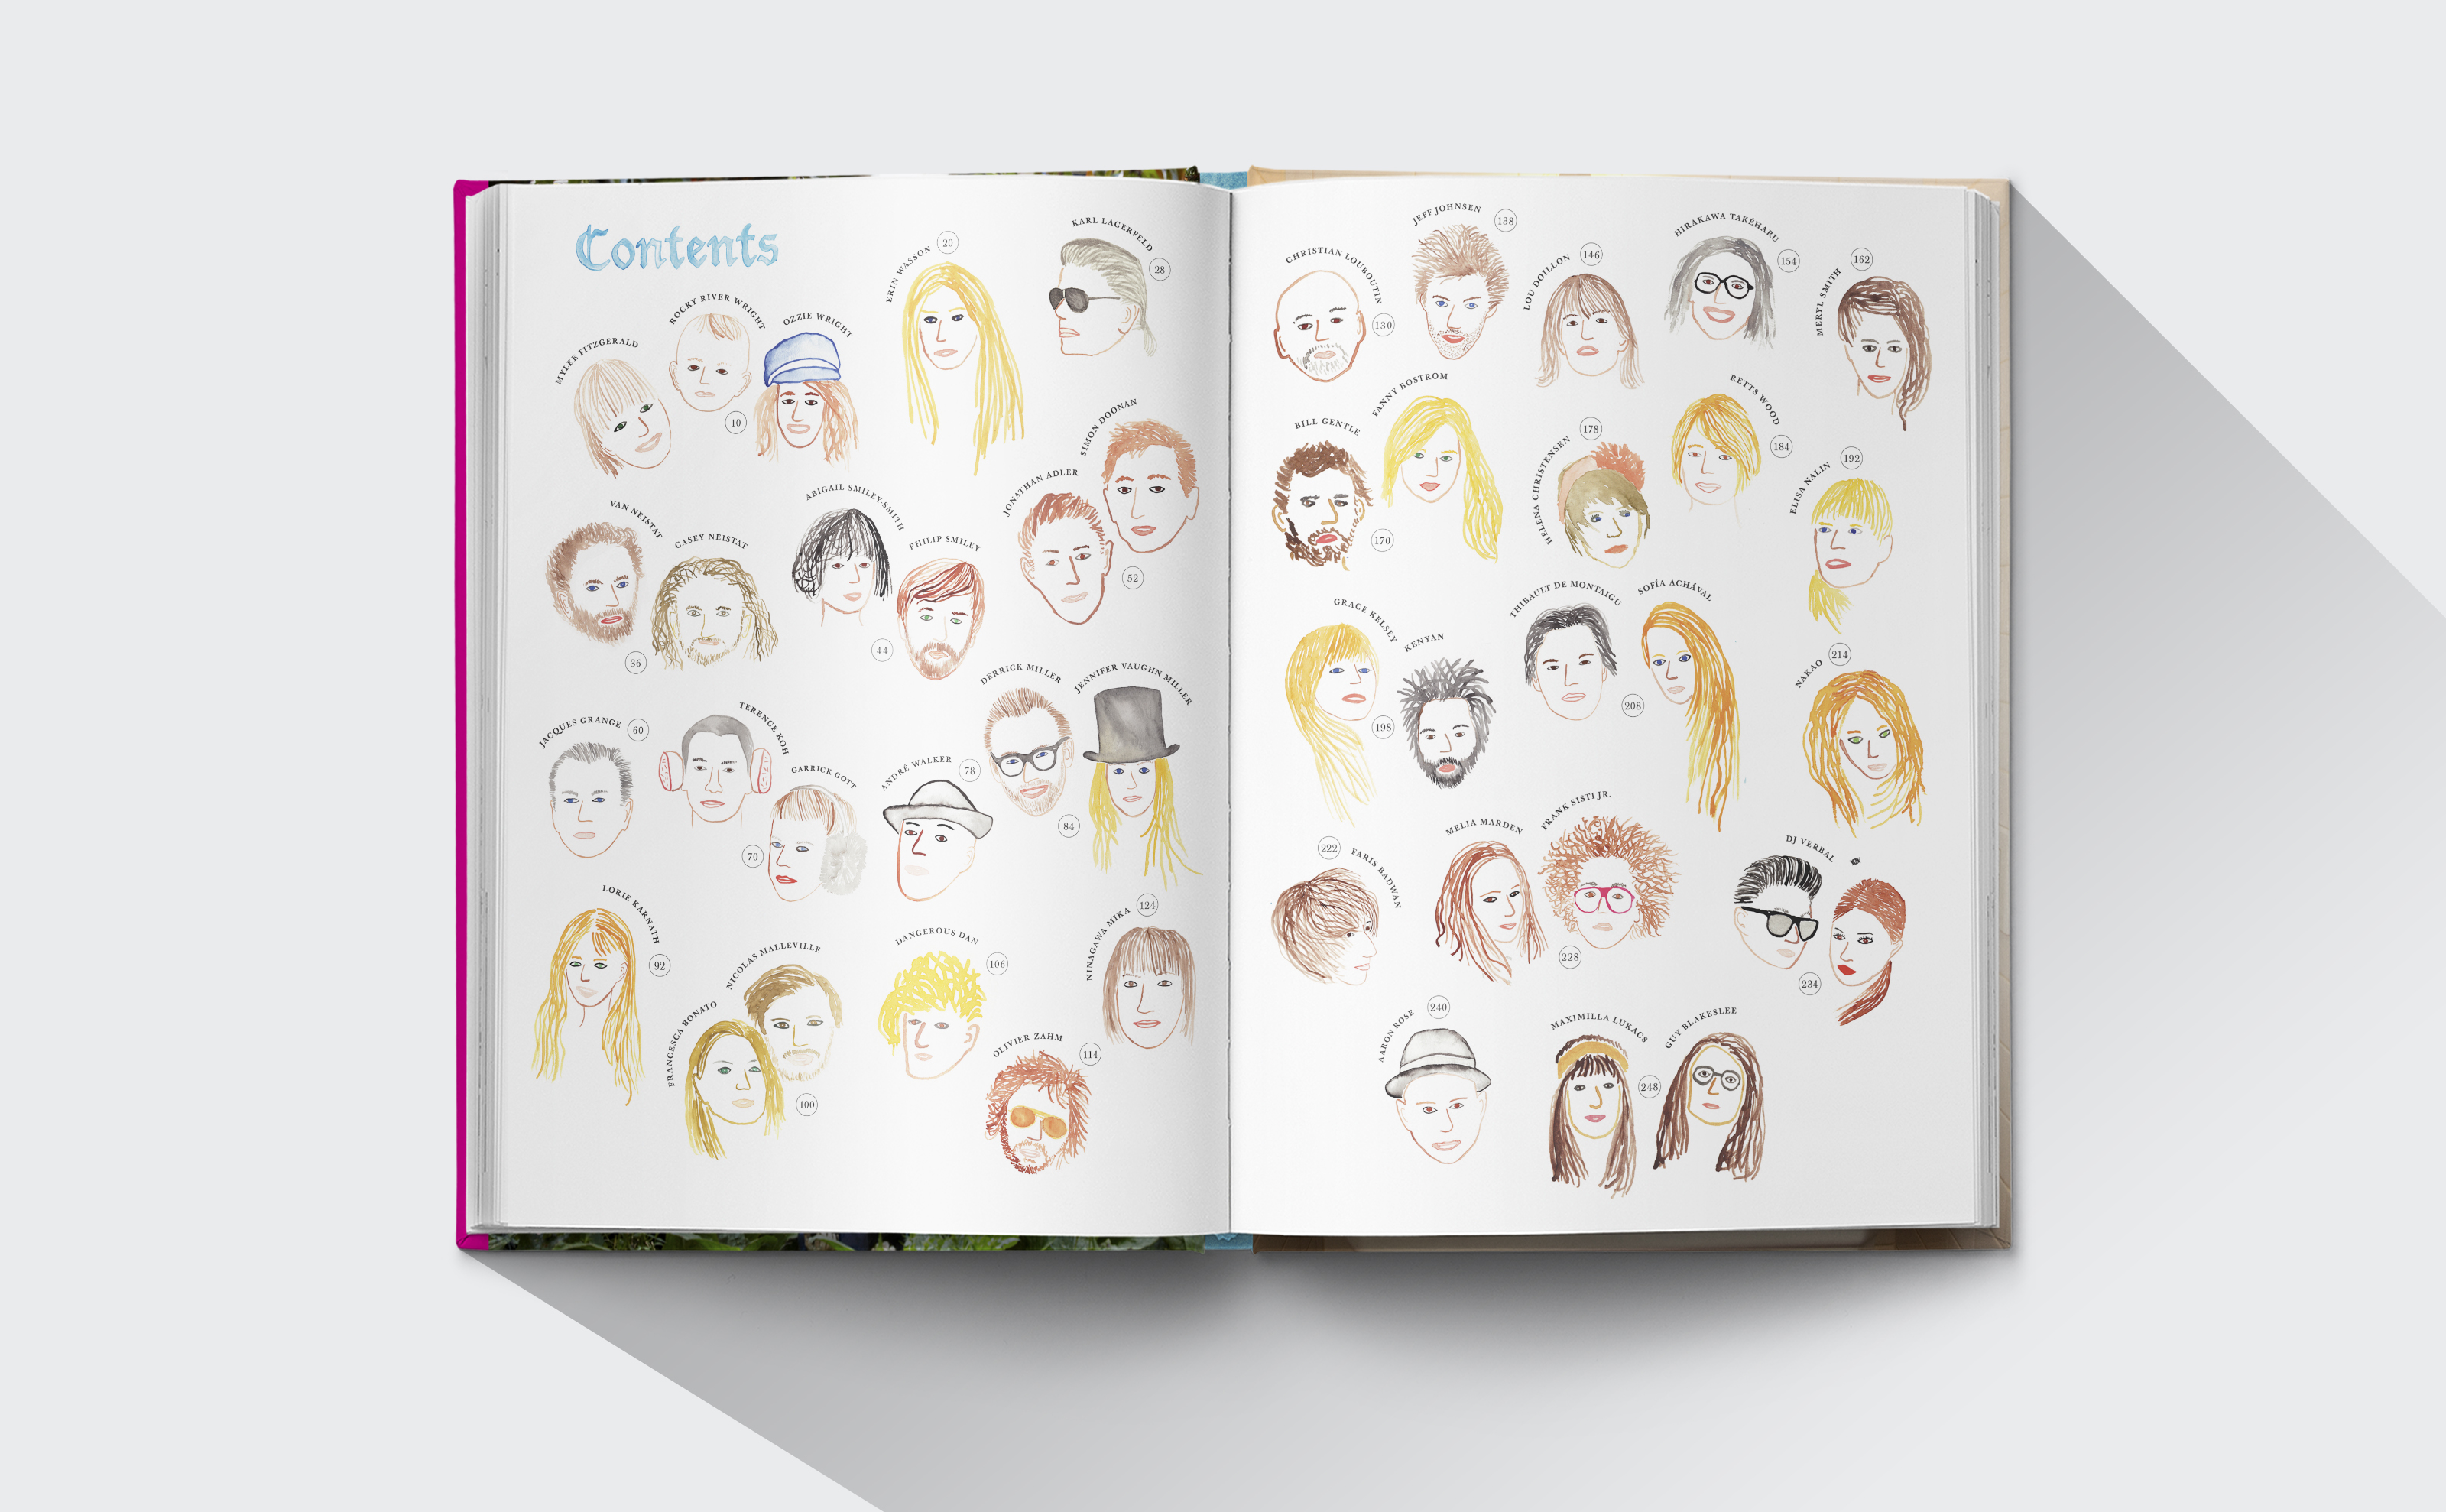 The Selby Todd Selby book design interior with portrait illustrations